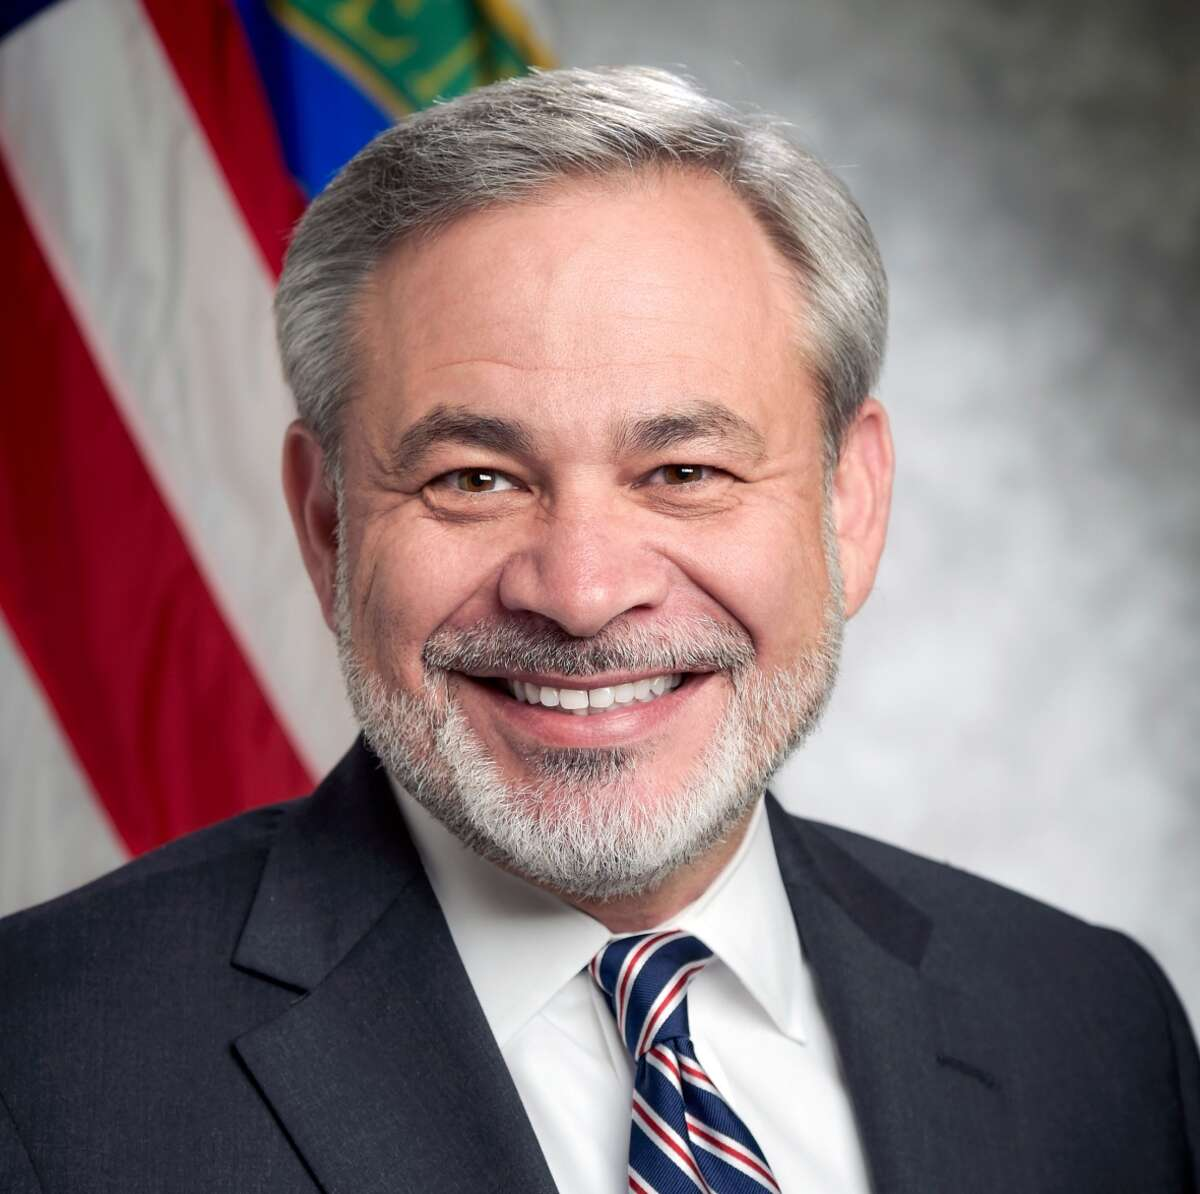 Dan Brouillette is the United States Secretary of Energy.